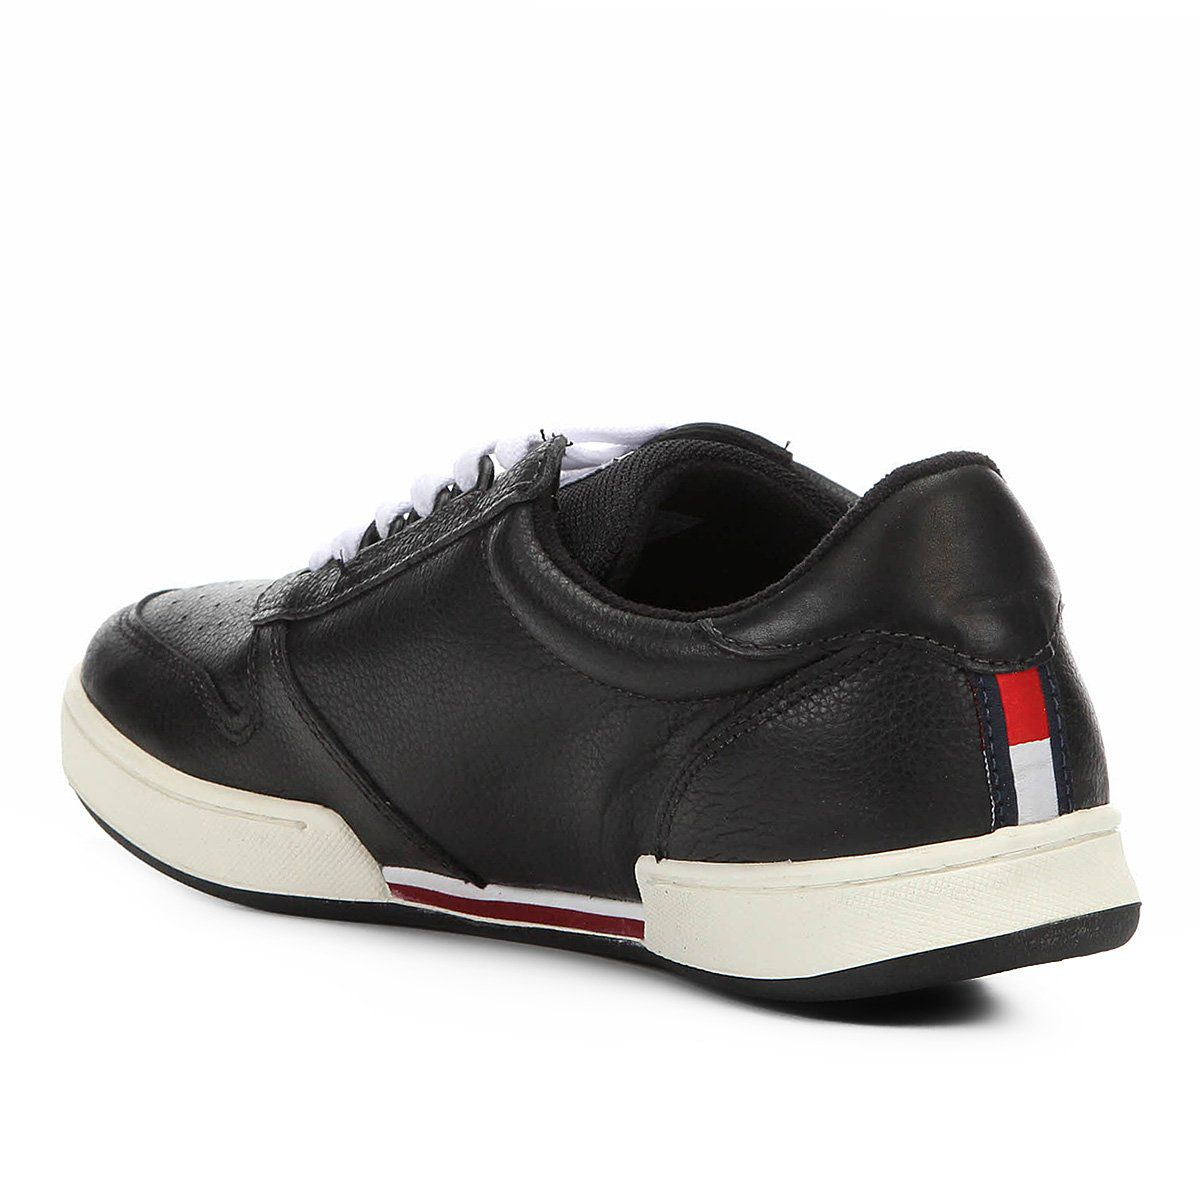 Tênis Tommy Hilfiger Hoxt Couro Masculino